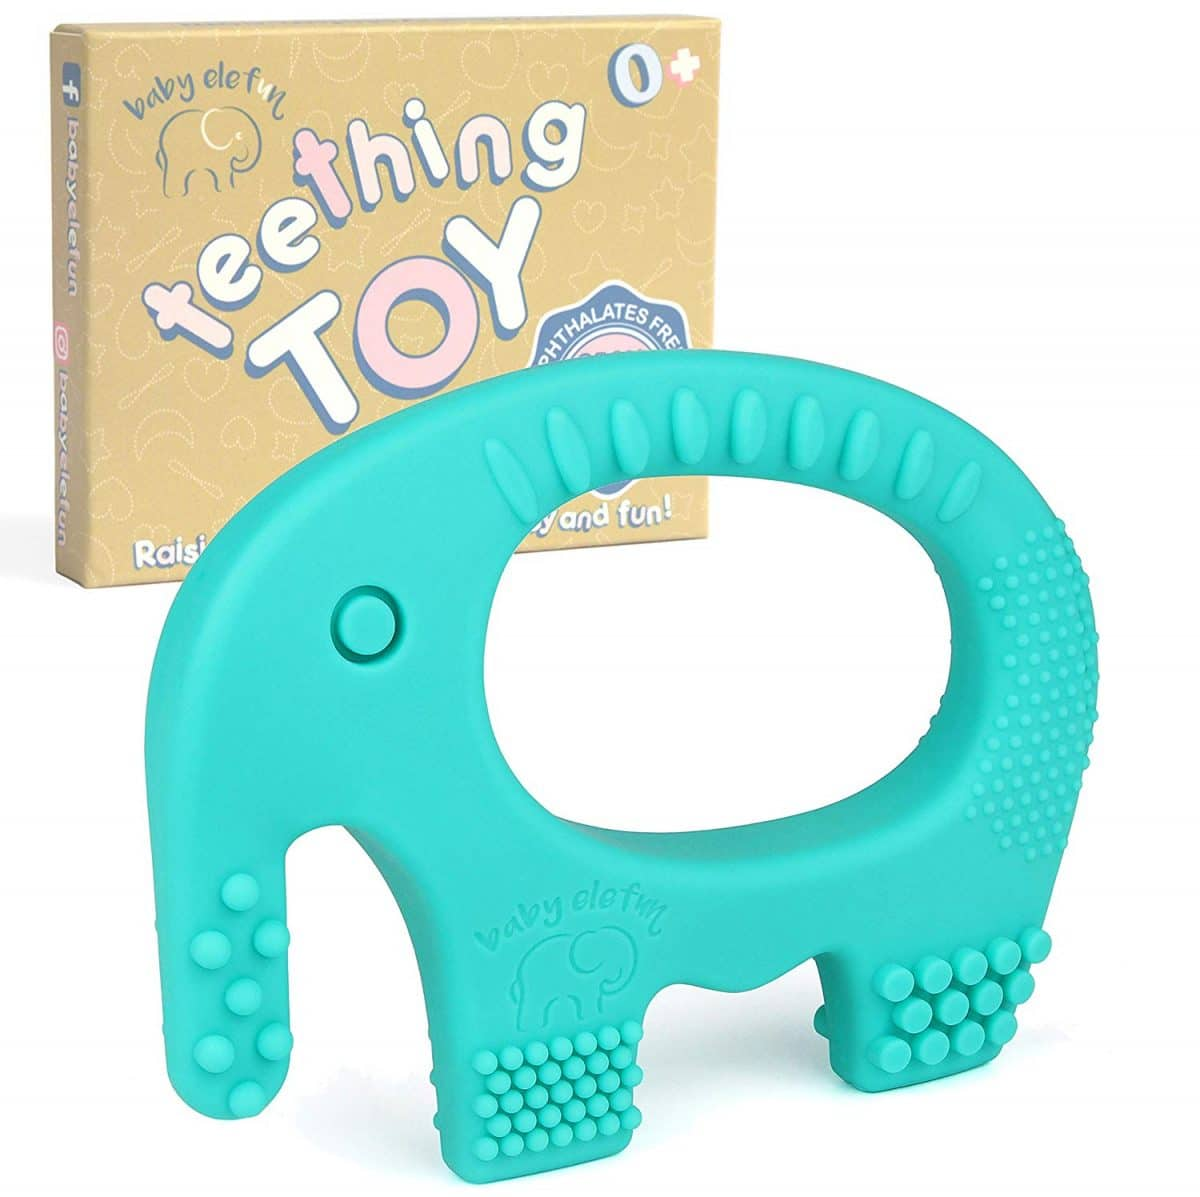 Highly Effective Pain Relief Cookie Teether Chew Beaded with Pacifier Clip Soft and Highly Recommended by Moms Baby Teething Toys FDA Compliant BPA /& Phthalates Free Natural Organic Freezer